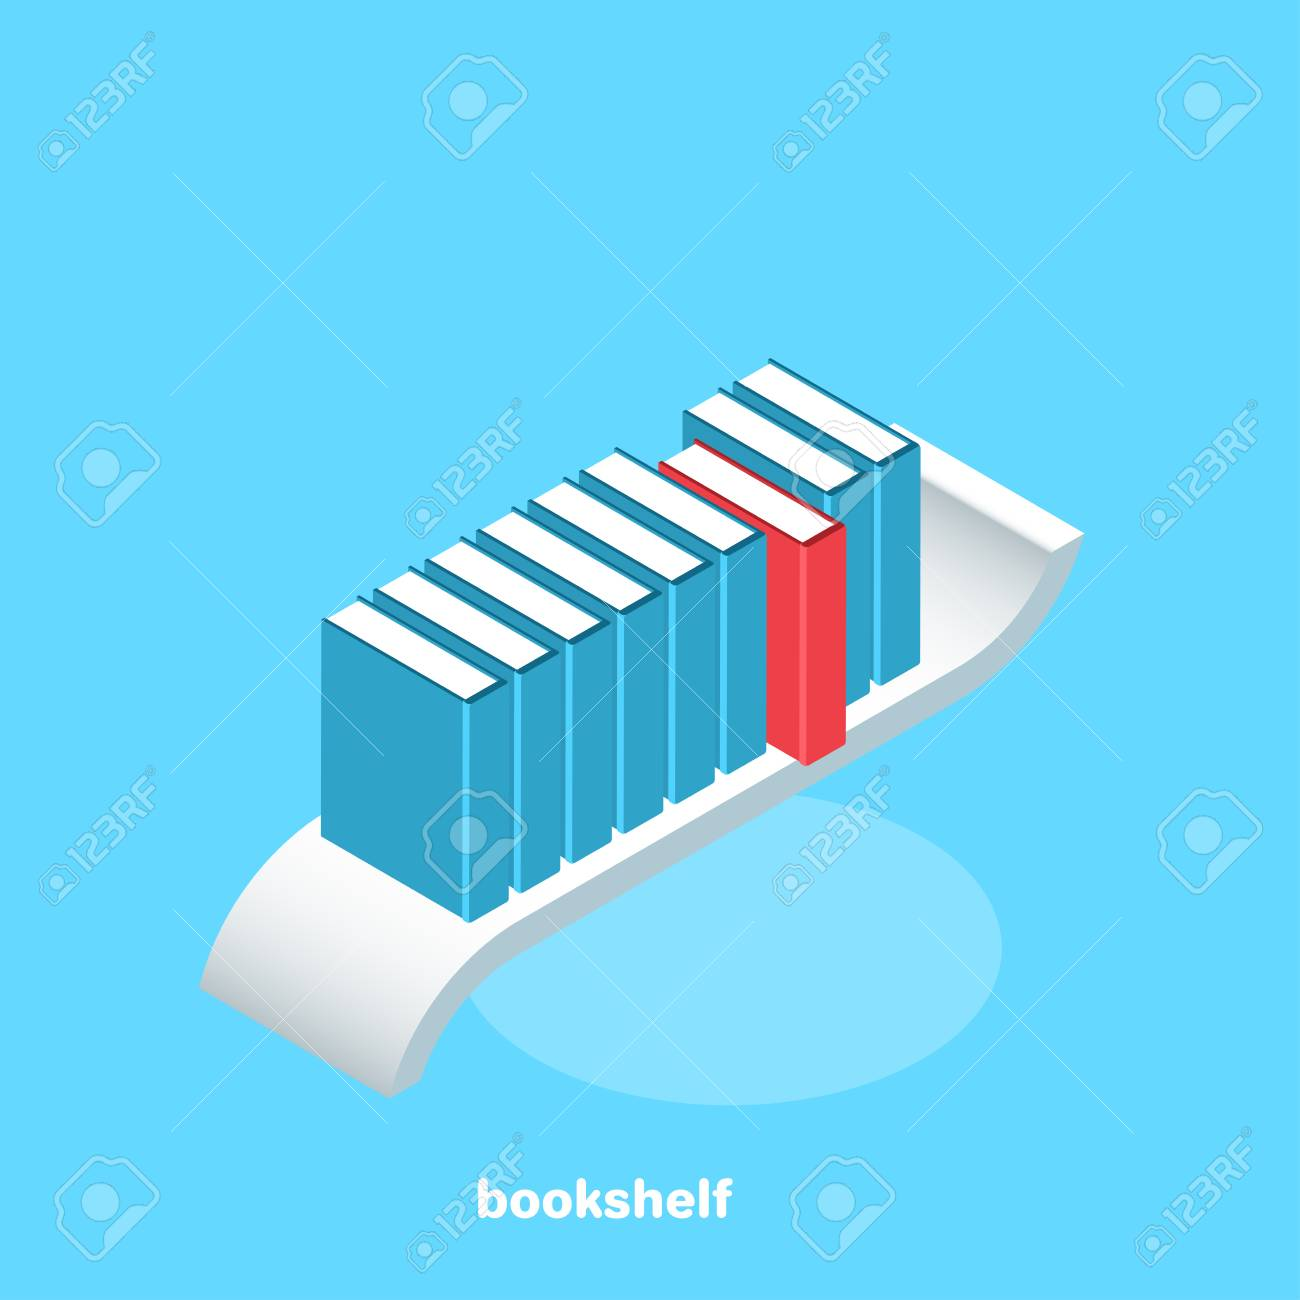 Books Of Blue Color On The Shelf And One Special Book Of Red ...